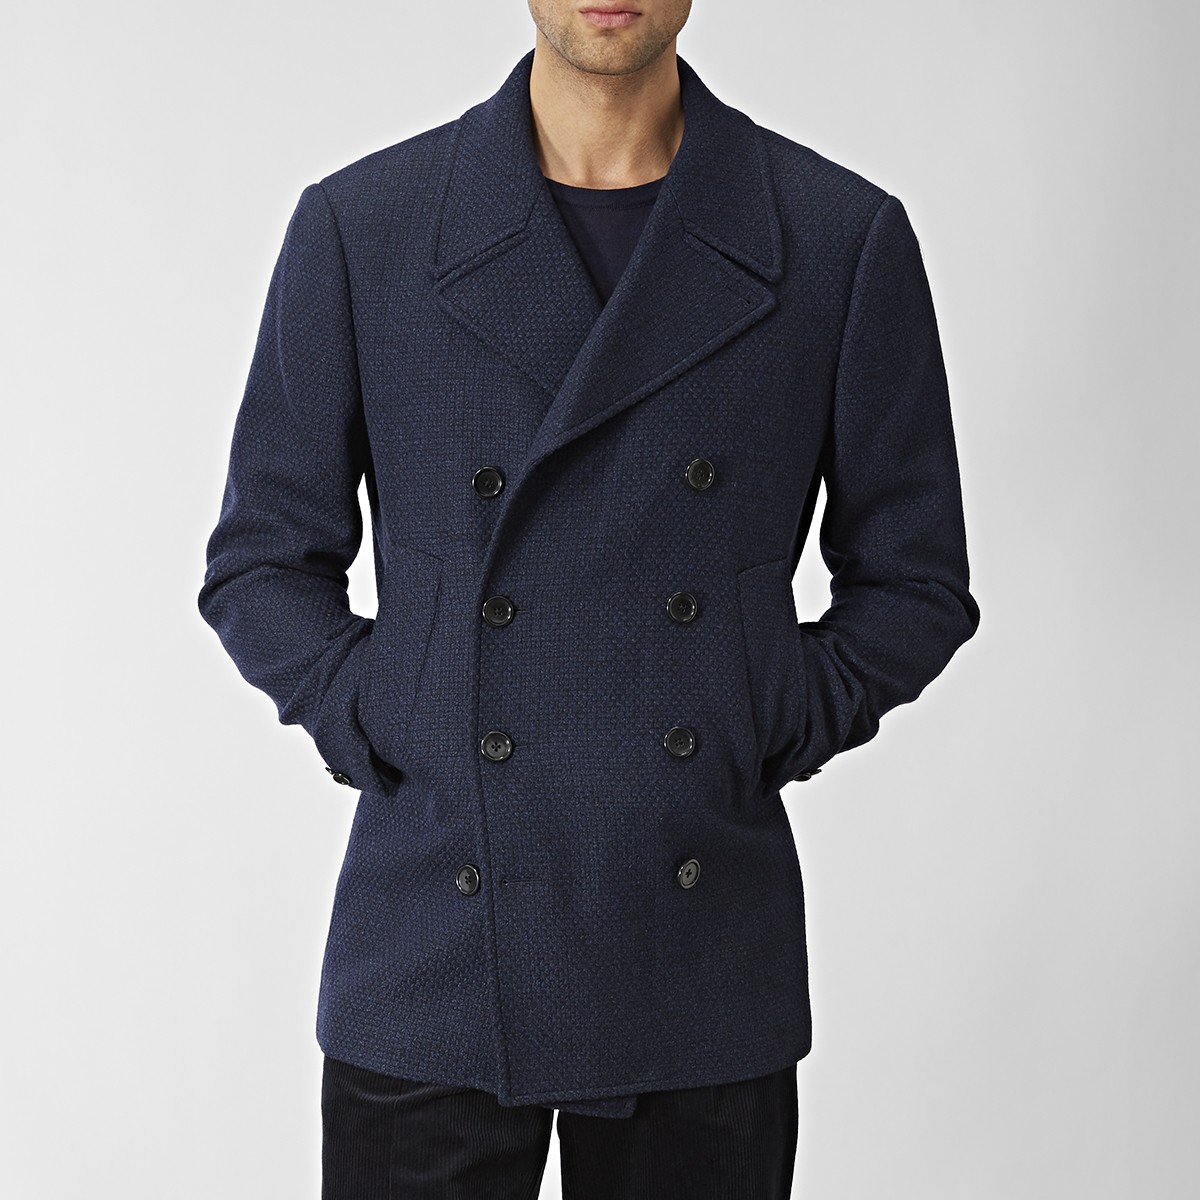 Haddock Peacoat Blå | The Tailoring Club | Brothers.se